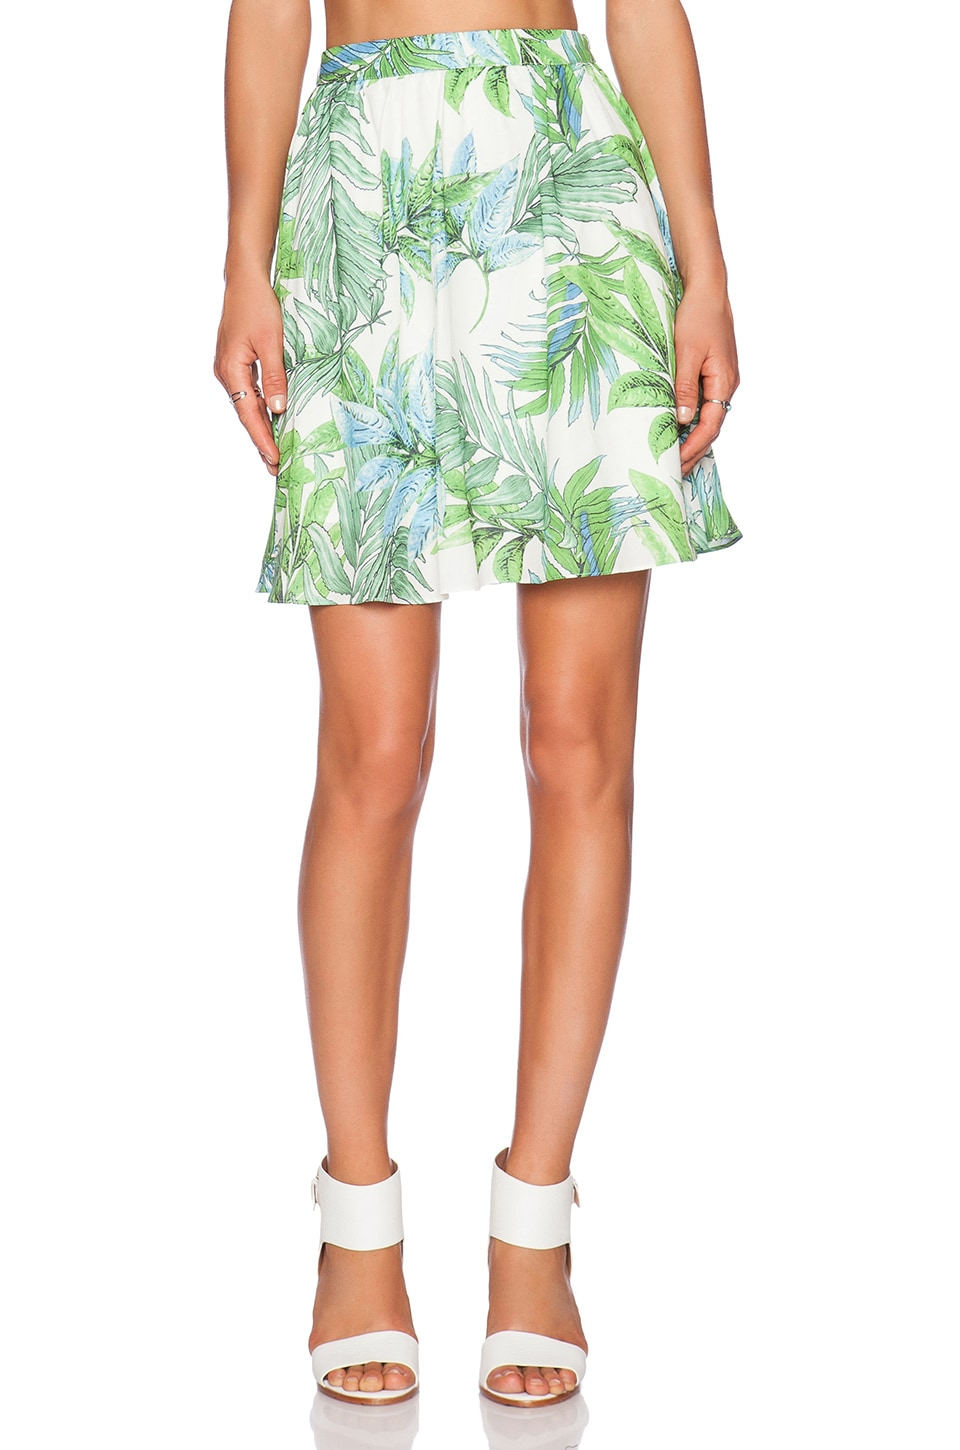 Lucy Paris x REVOLVE You Are My Sunshine Skirt in Palm Print